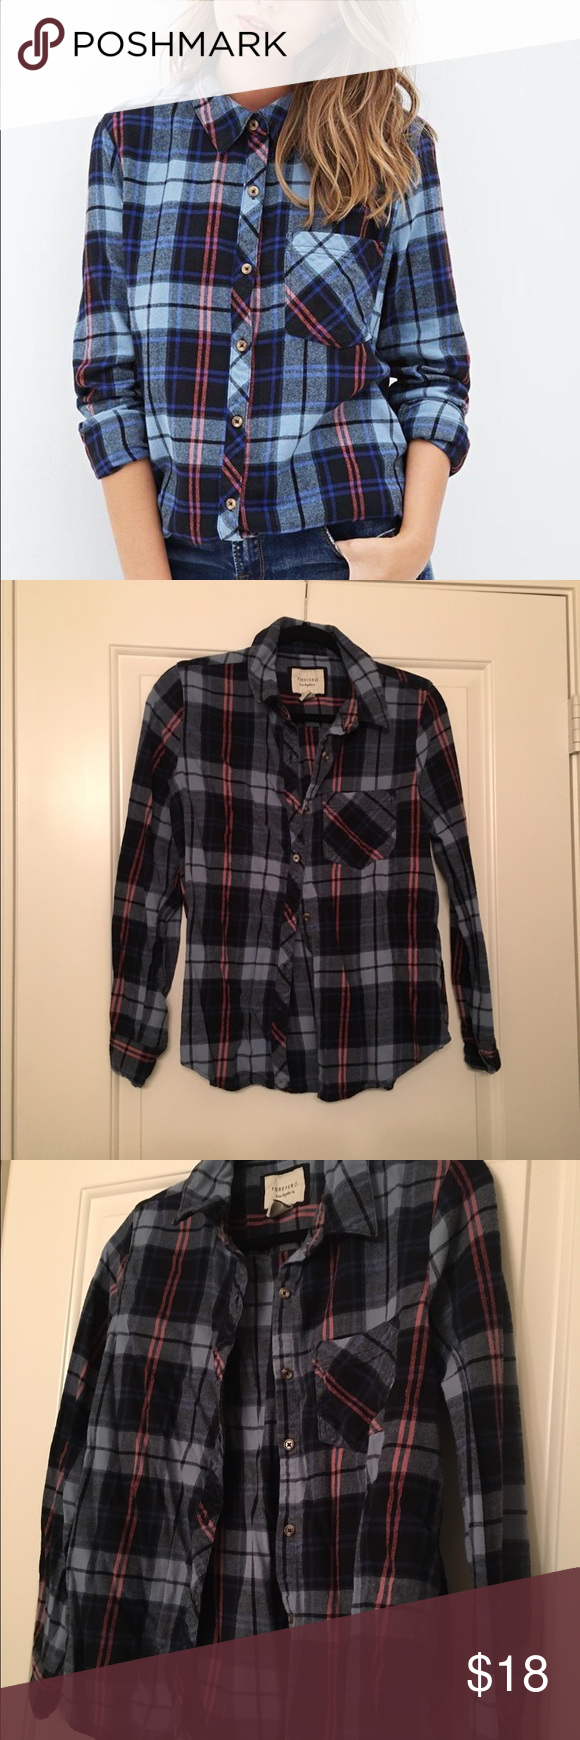 Forever 21 Tartan Plaid Flannel Shirt Extremely soft flannel, very cozy and warm, good for layering, has pretty blue navy flannel with small pink stripes as accents. Forever 21 Tops Button Down Shirts